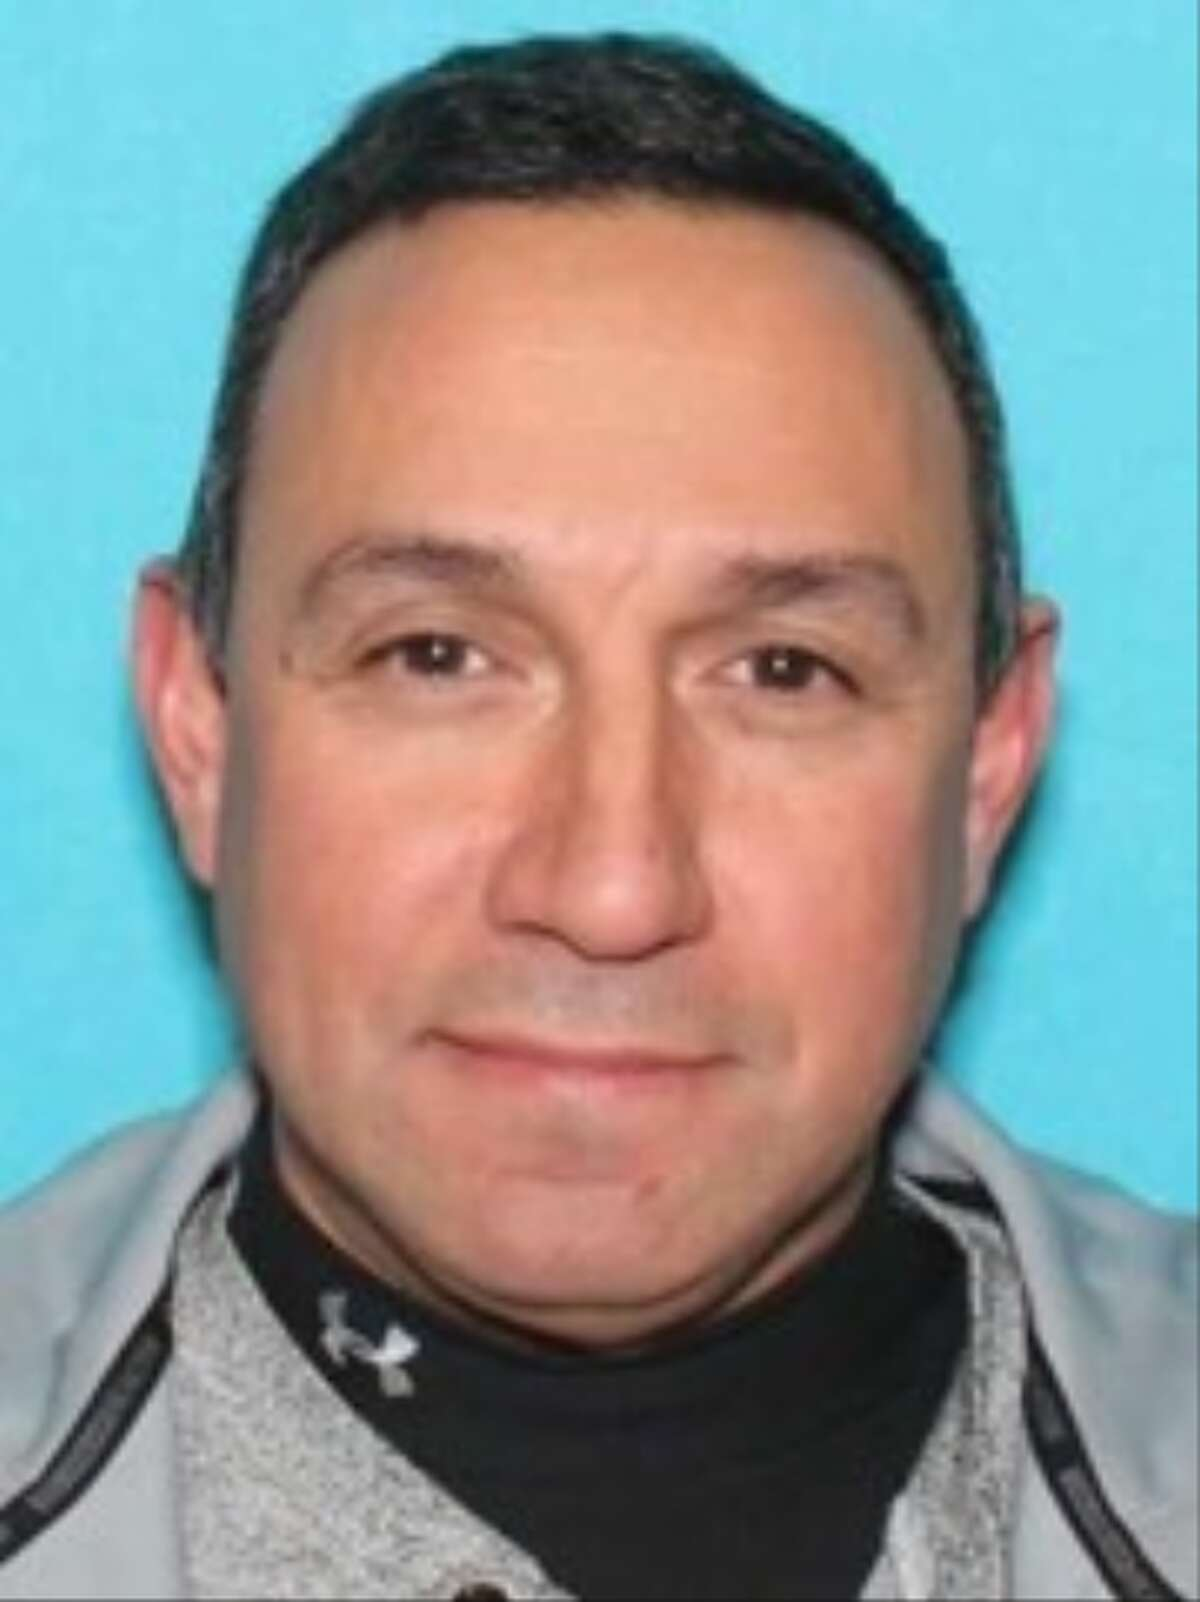 Security guard Robert Marquez was shot and killed on June 9 in Houston. He had been following a vehicle because of suspected criminal activity when a passenger stepped out and shot him.